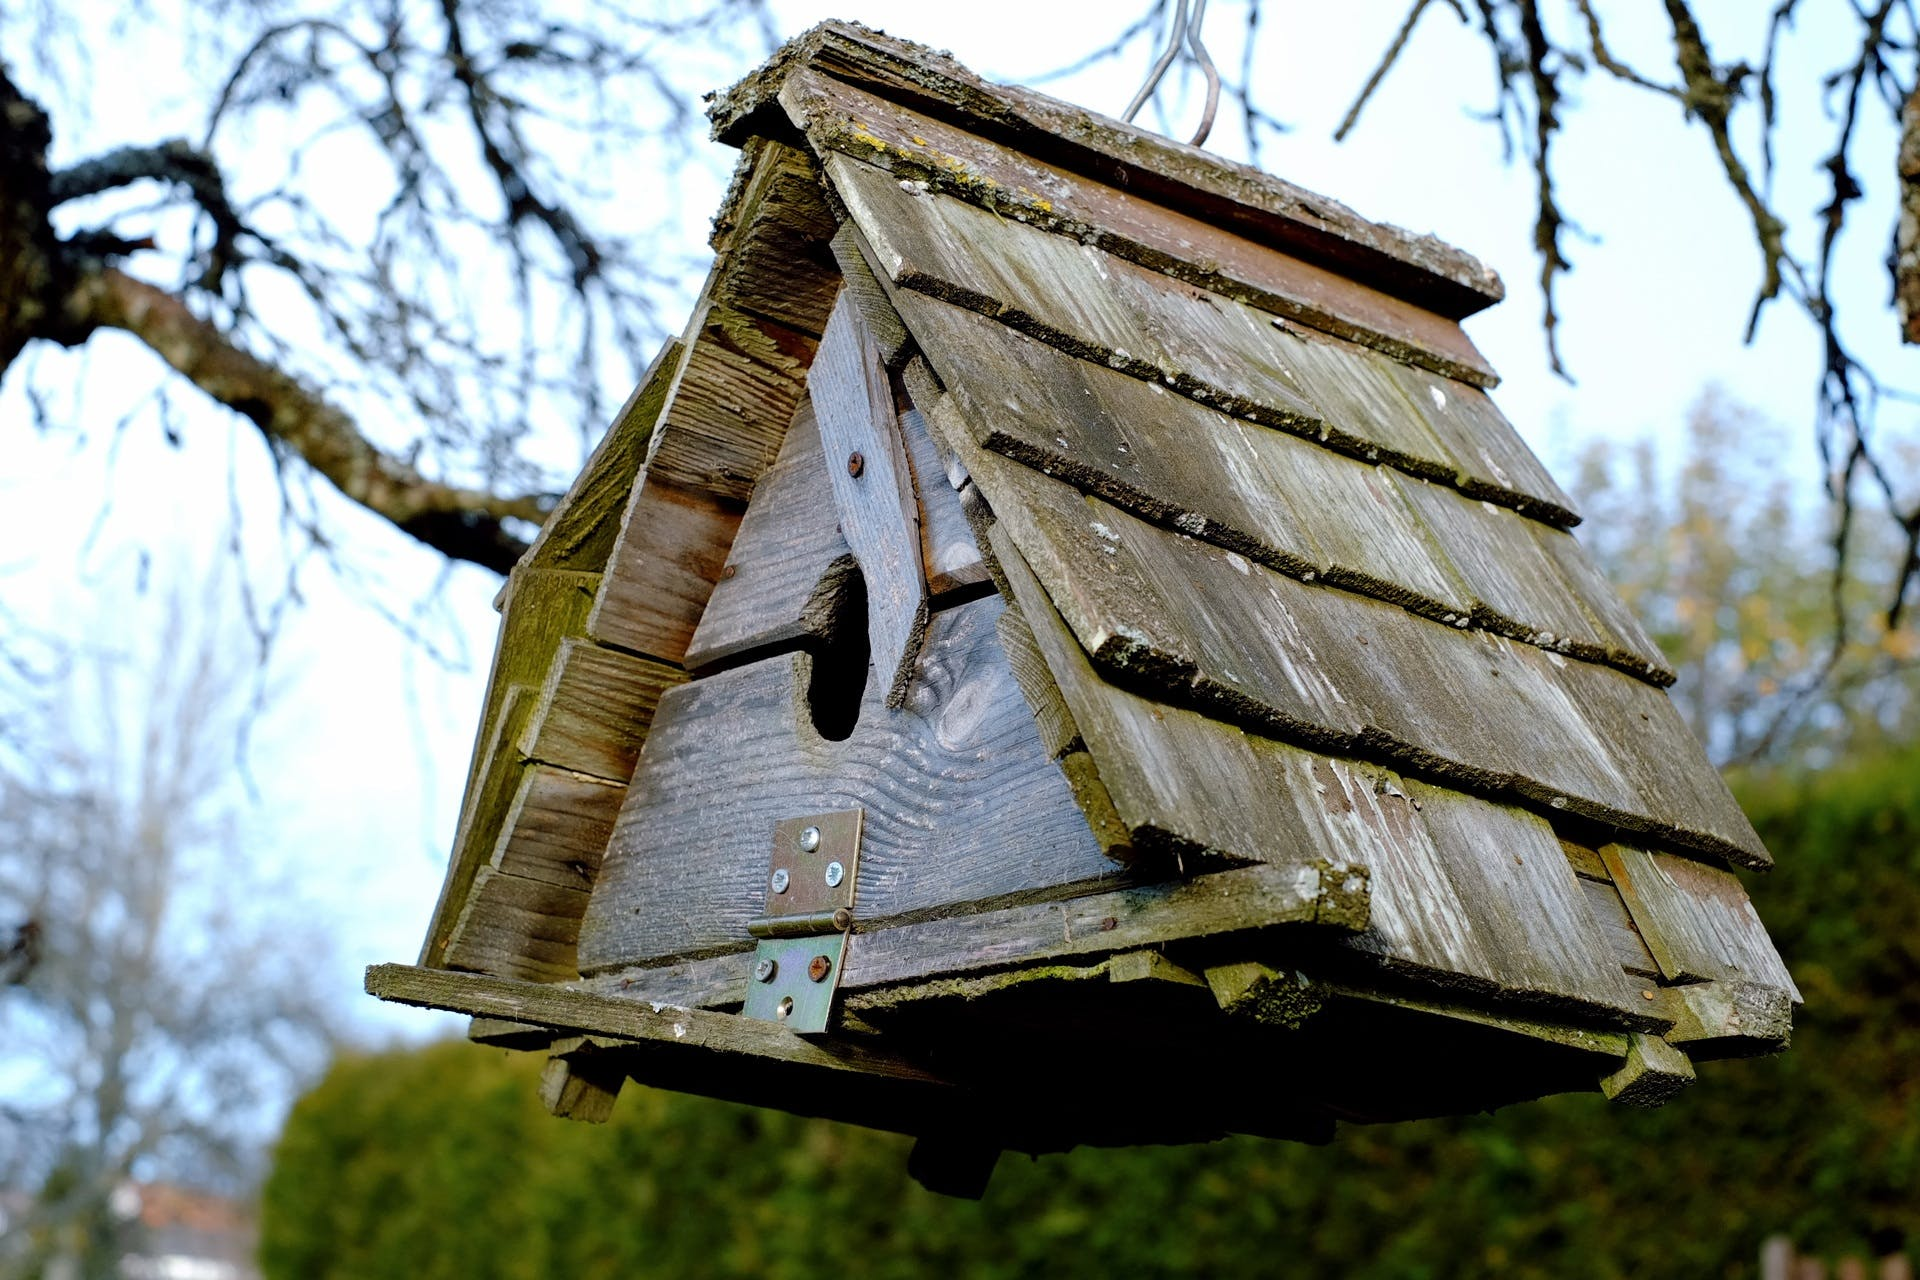 Low Angle View of Birdhouse Against Sky